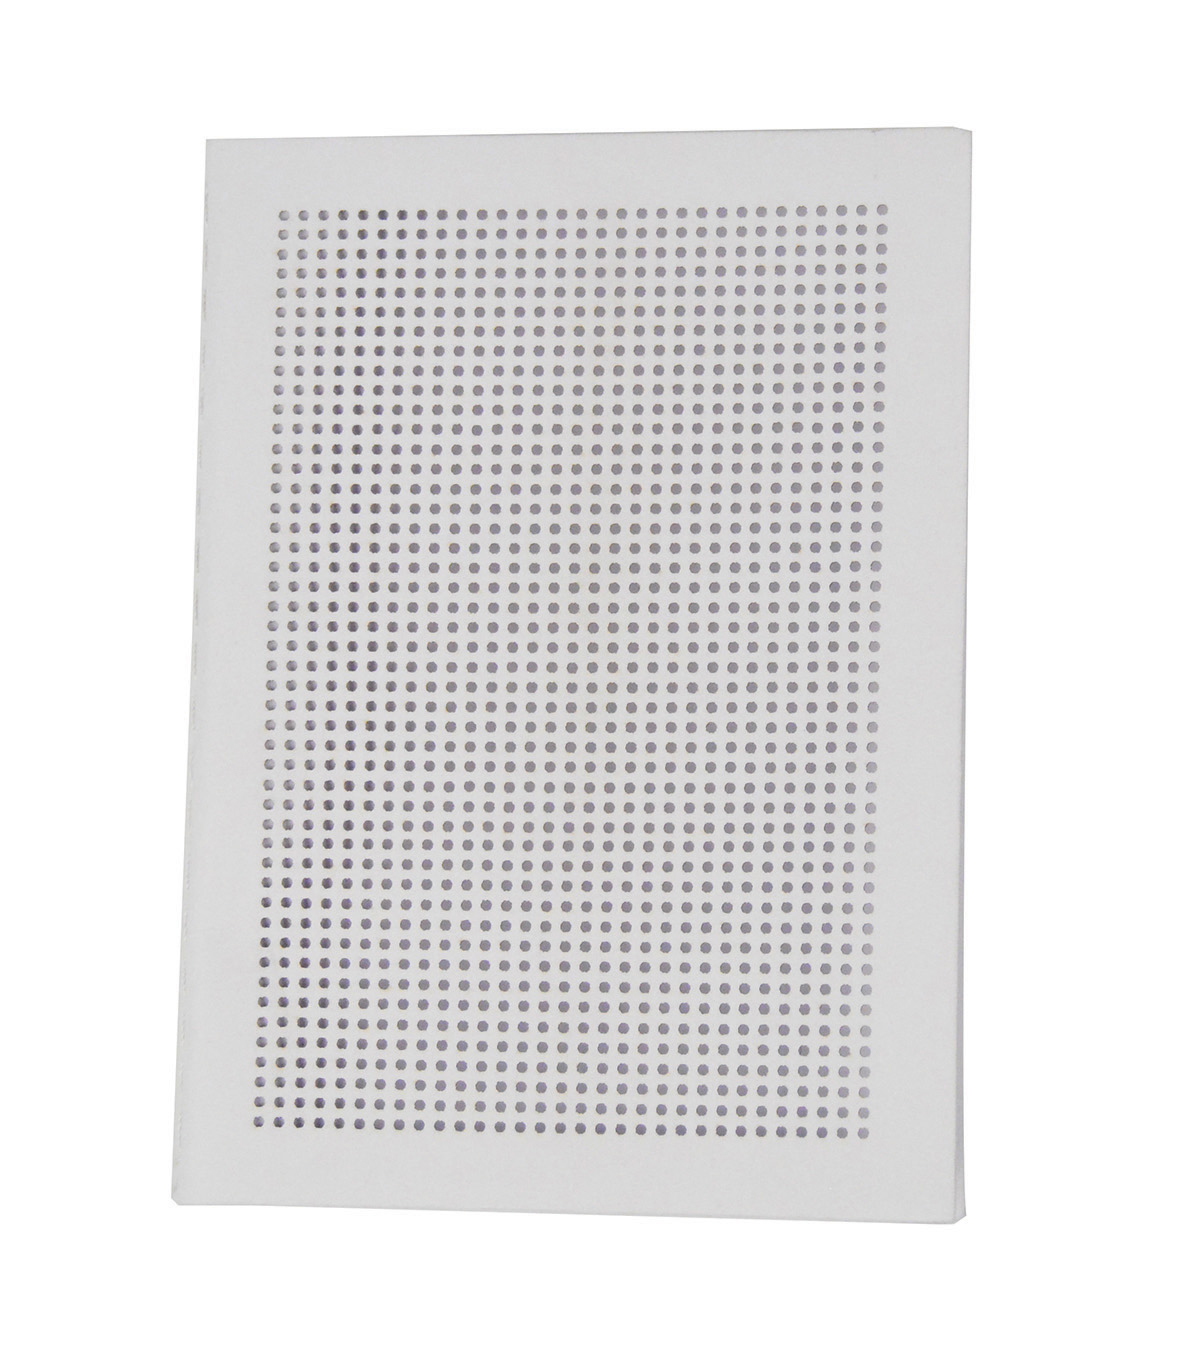 Cross Stitch Style Punched Cover Journal-White